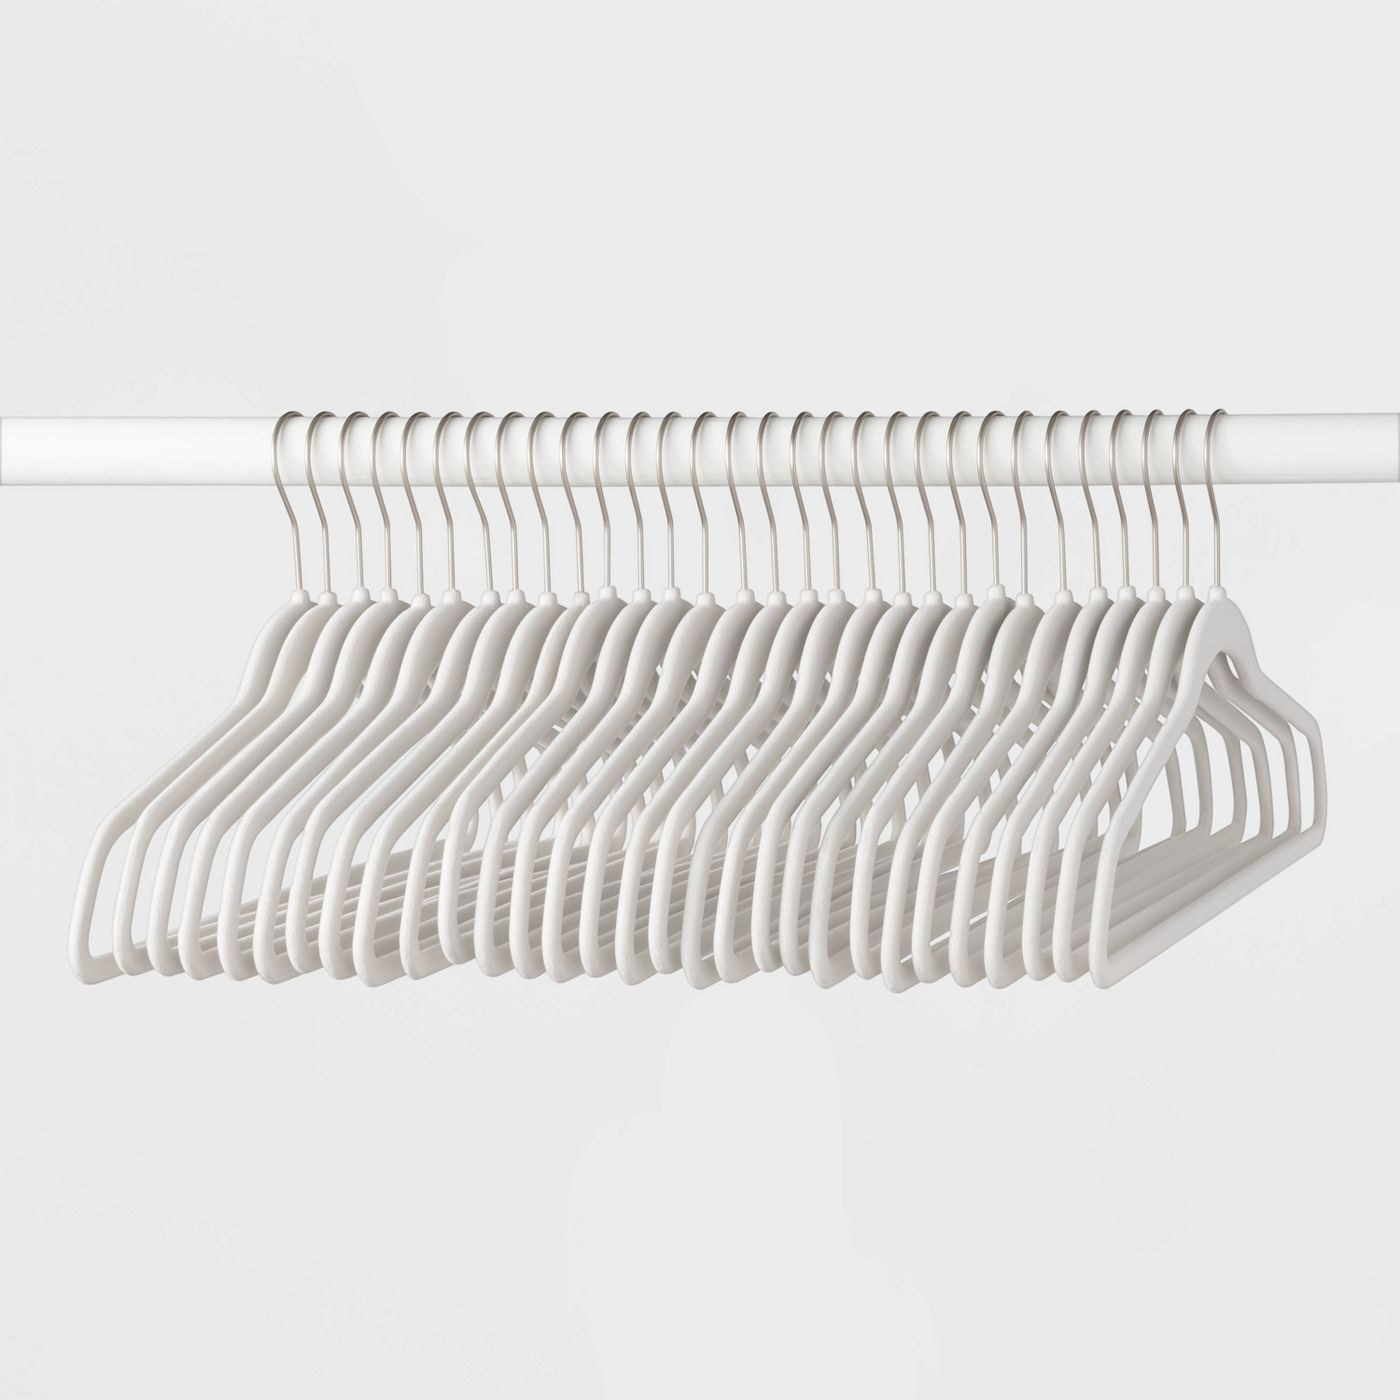 A set of white suit hangers hanging